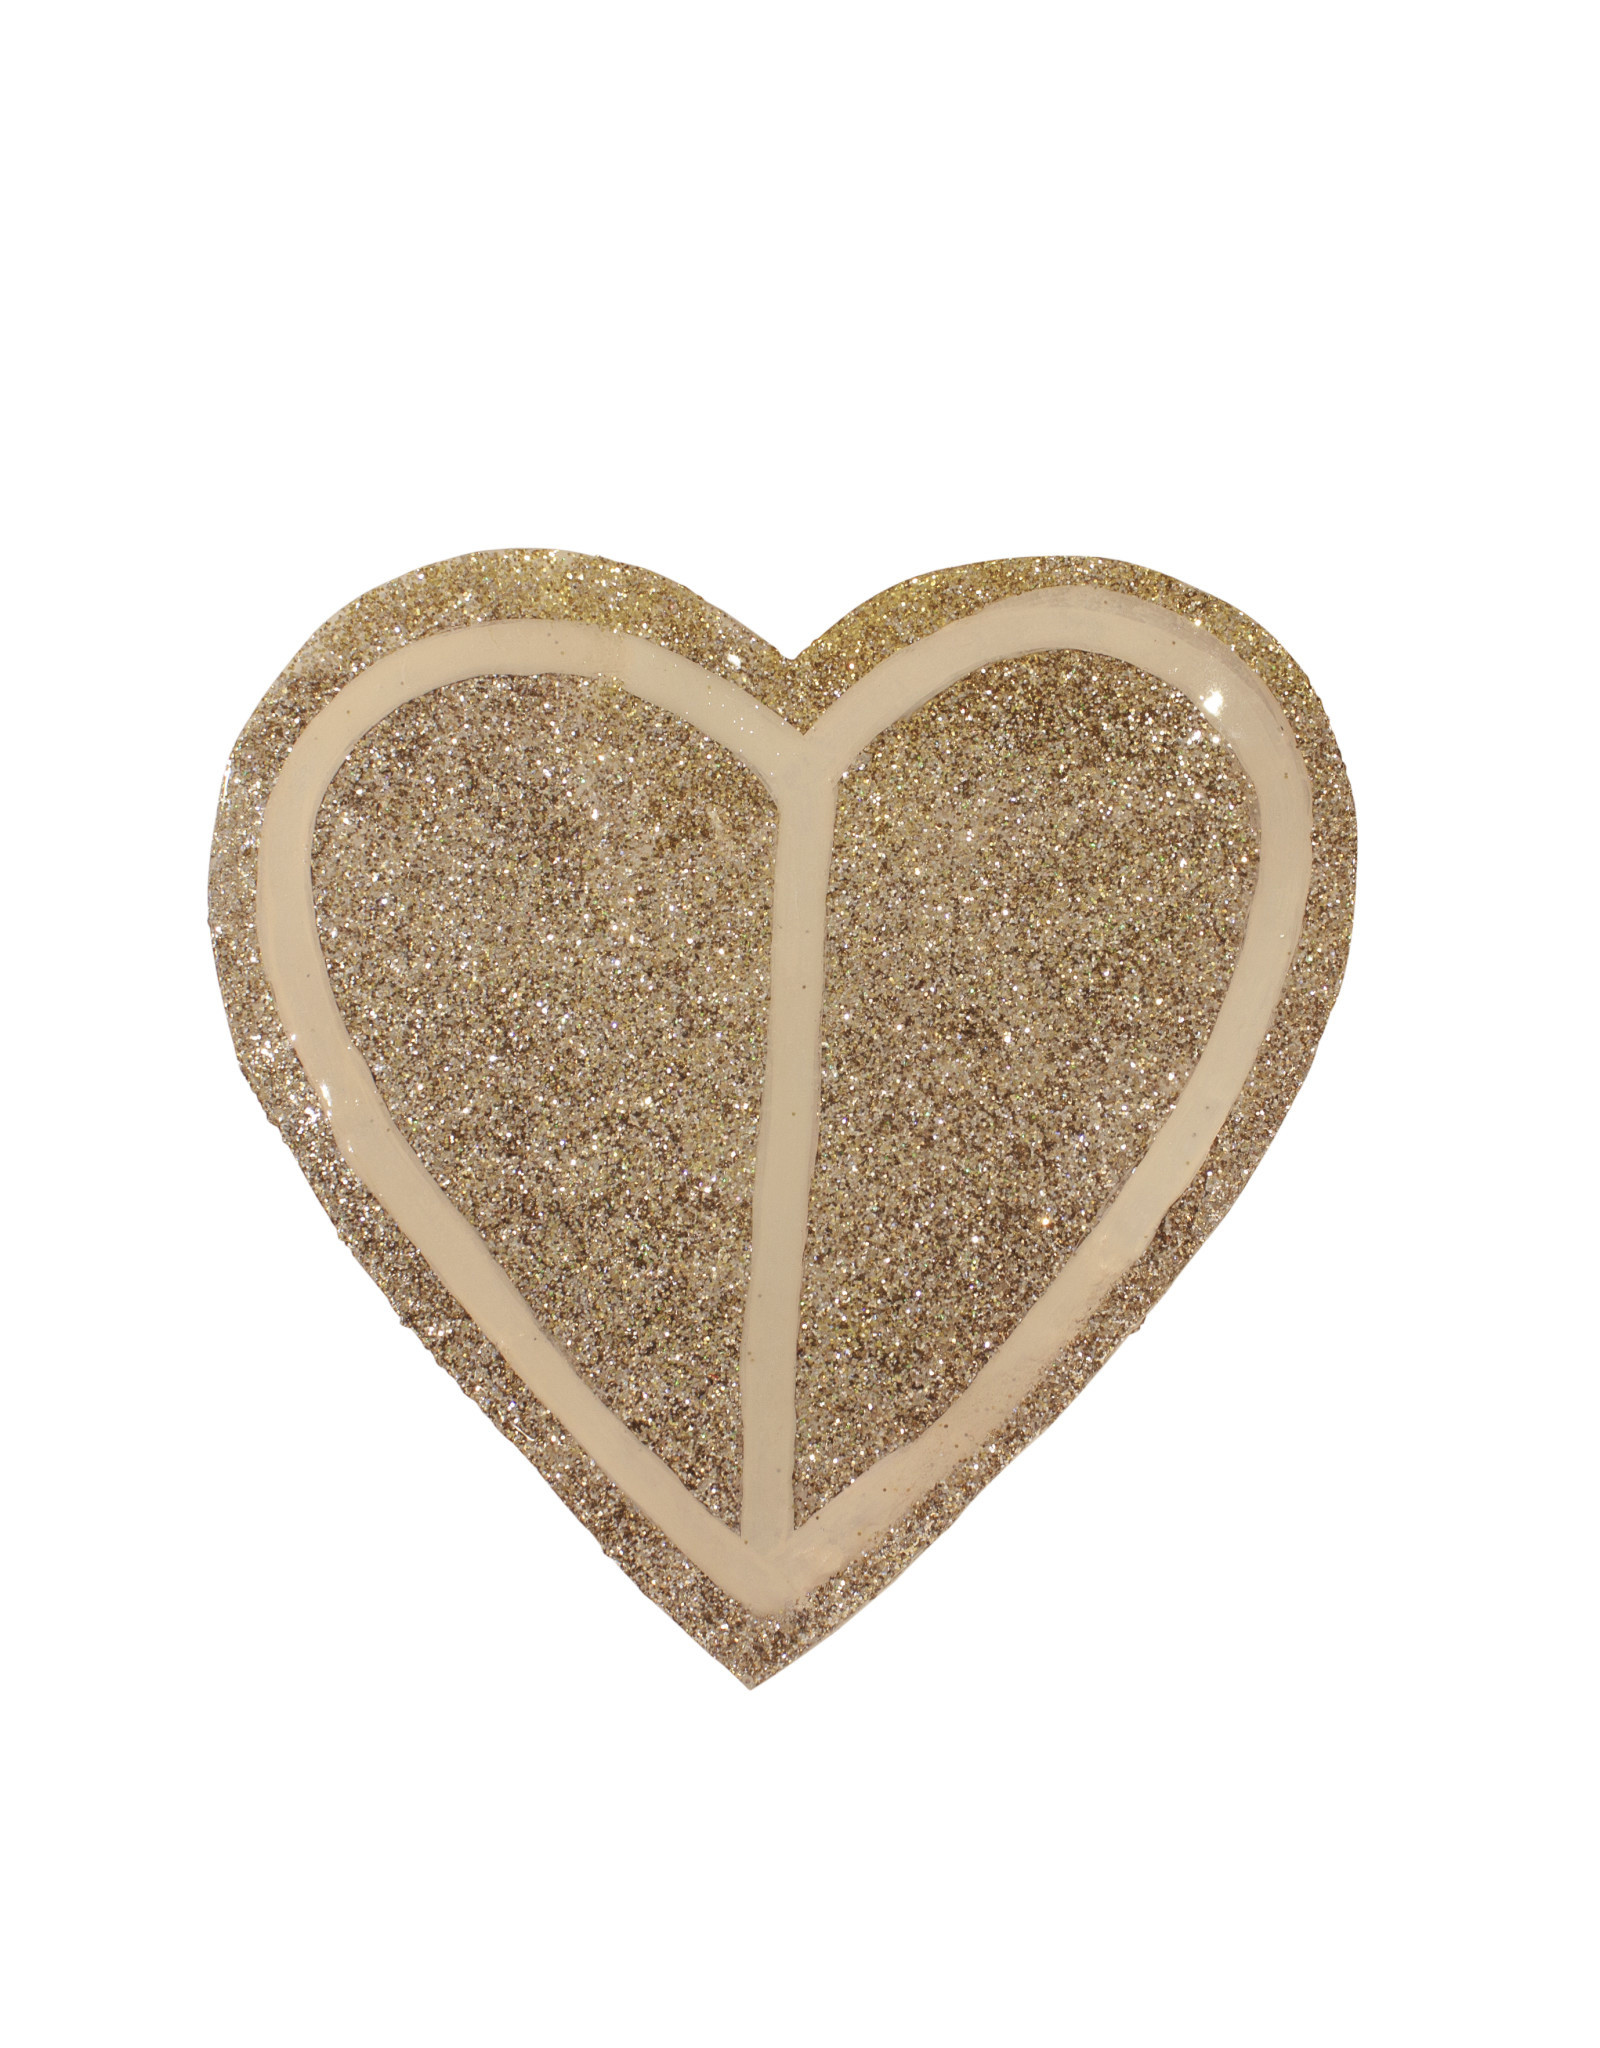 Entouquet Champagne Glitter + Blush Line Design Large Heart